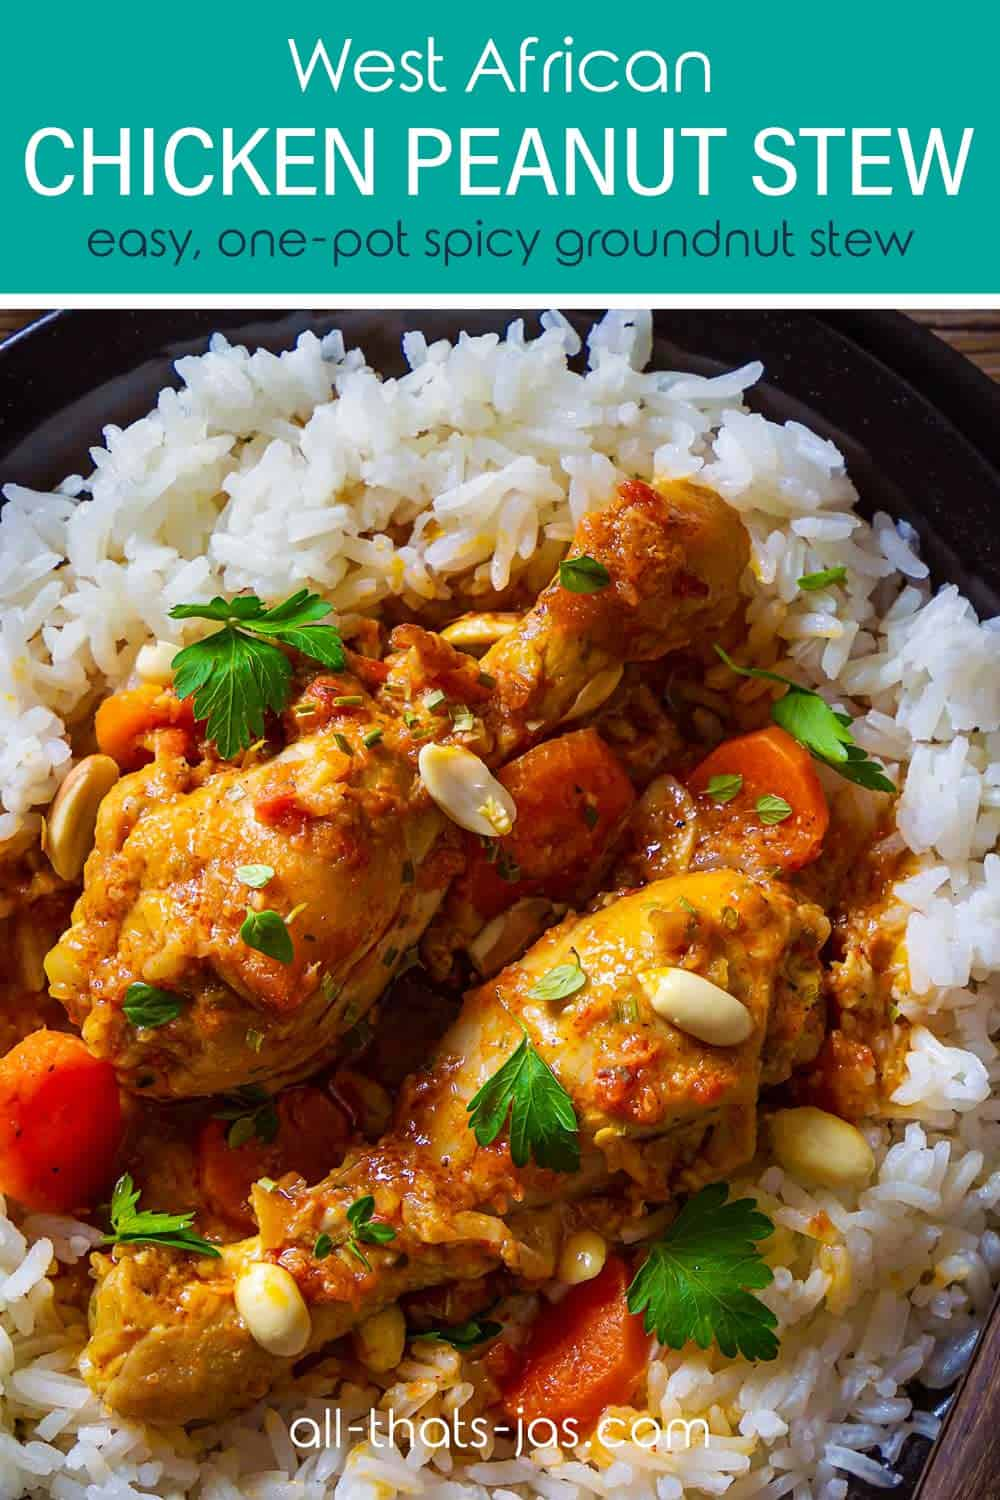 A closeup of the chicken drumsticks in spicy peanut sauce over white rice with text overlay.